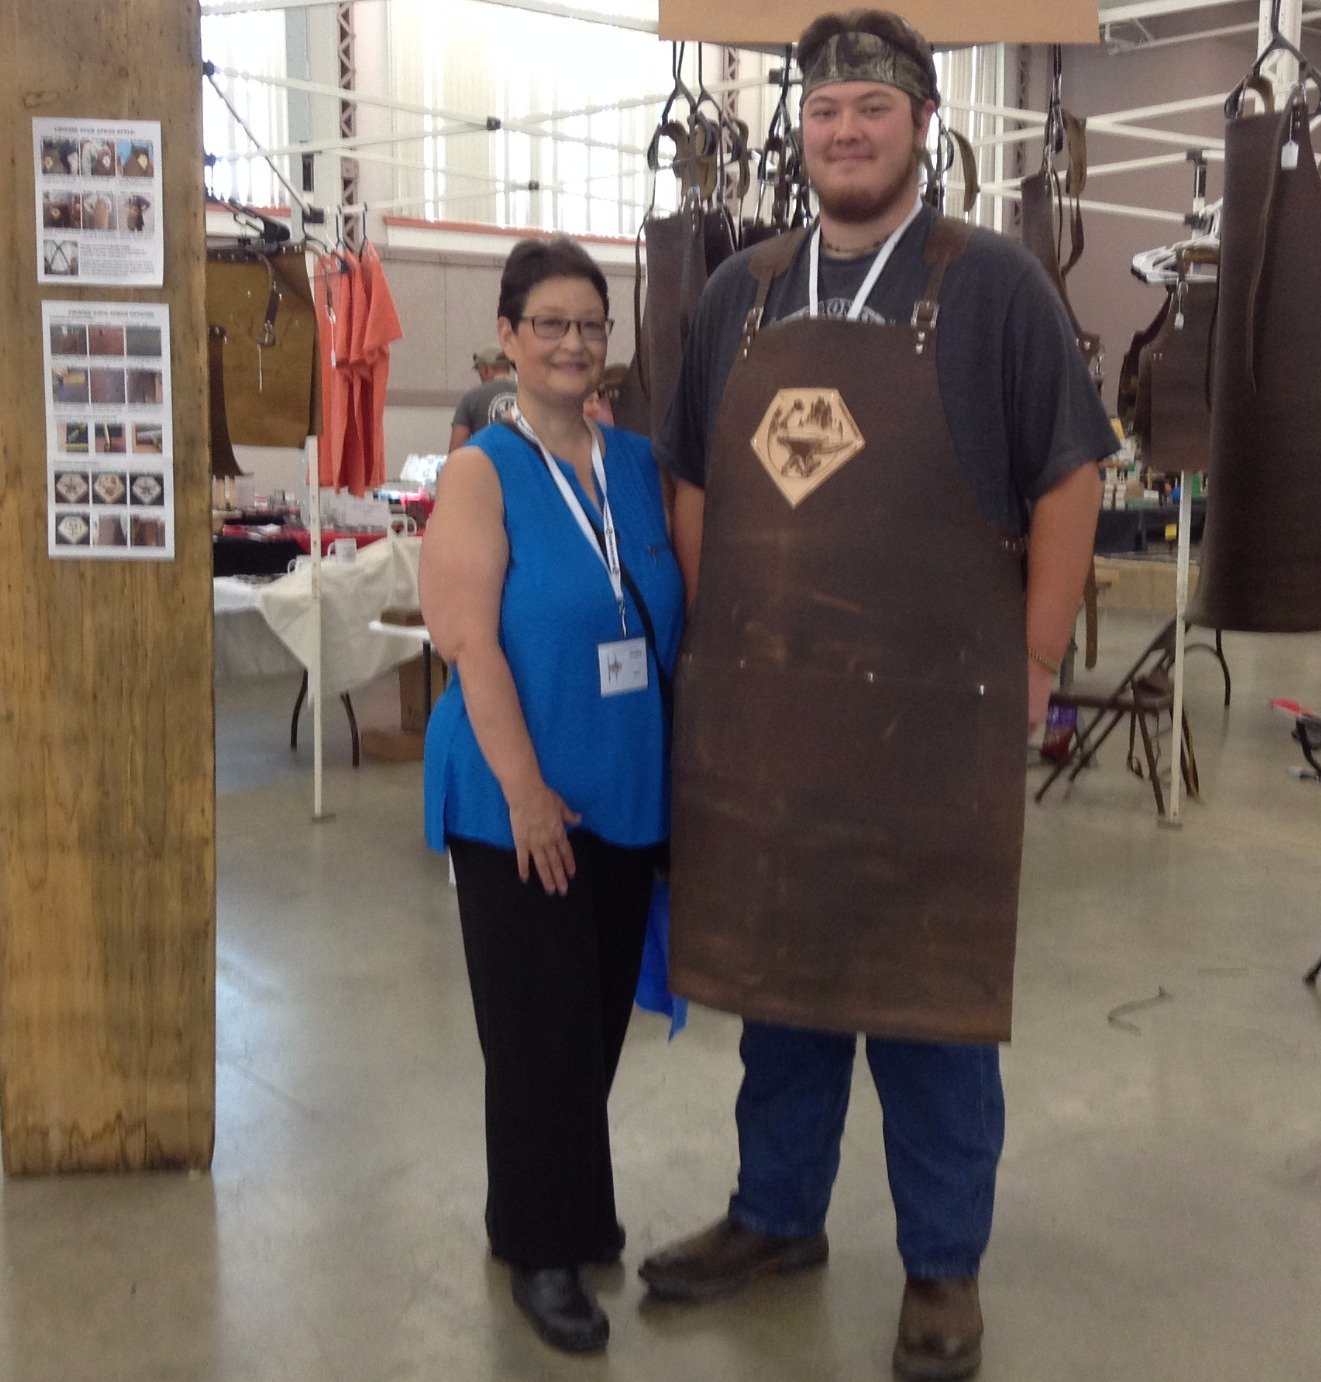 Joel in his new Forge-Apron